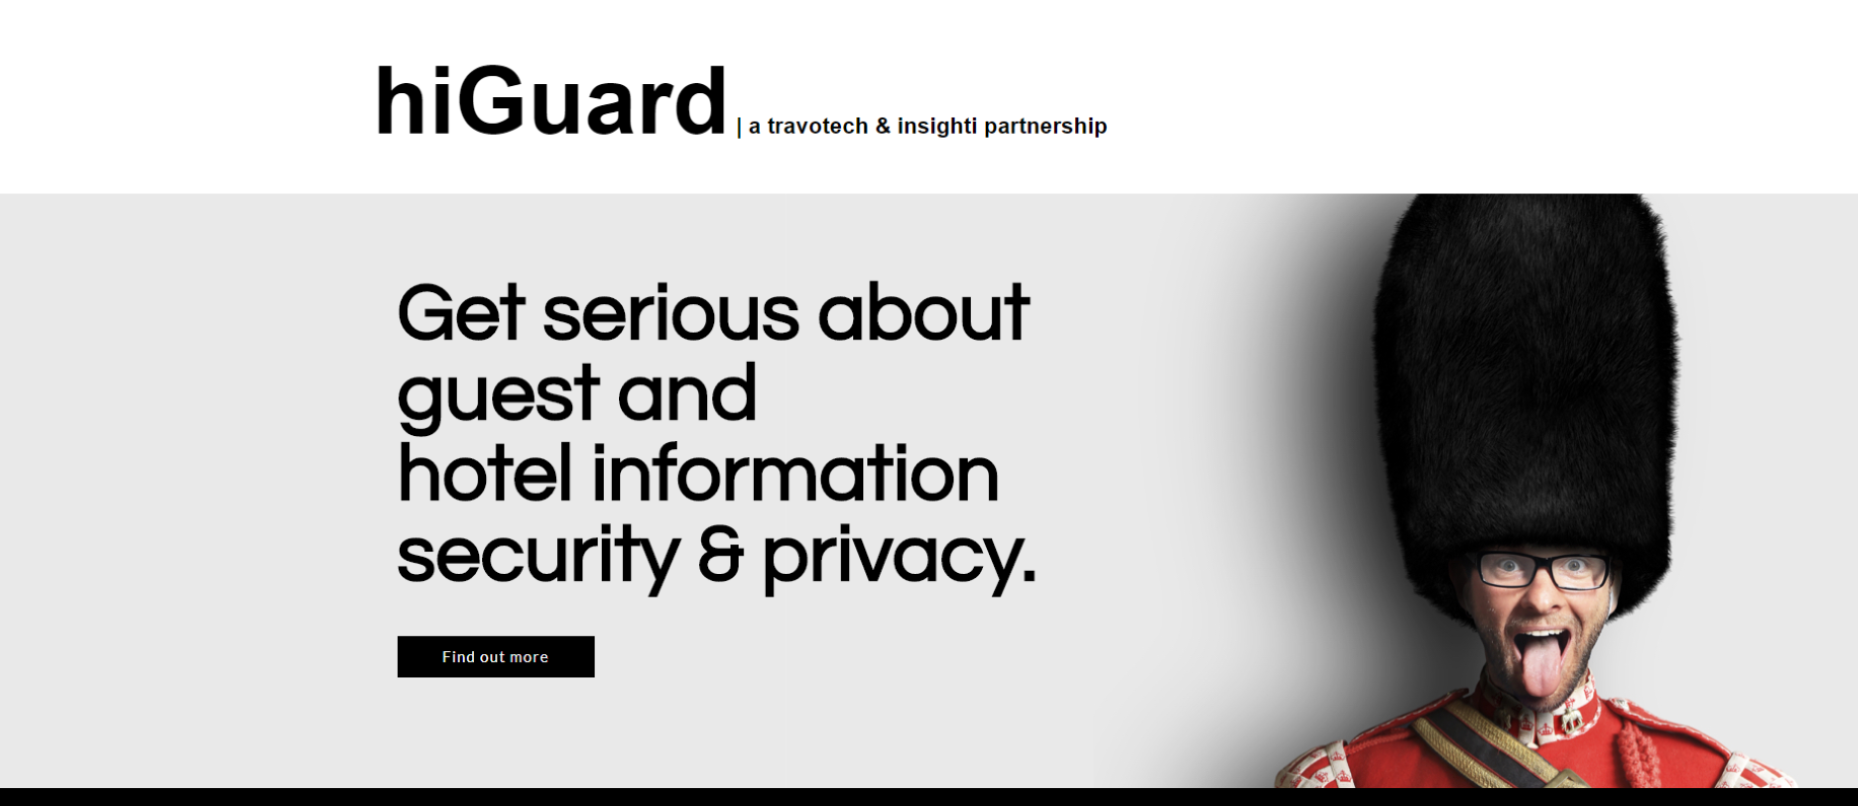 hiGuard landing page with Coldstream Guard in a humouress pose.